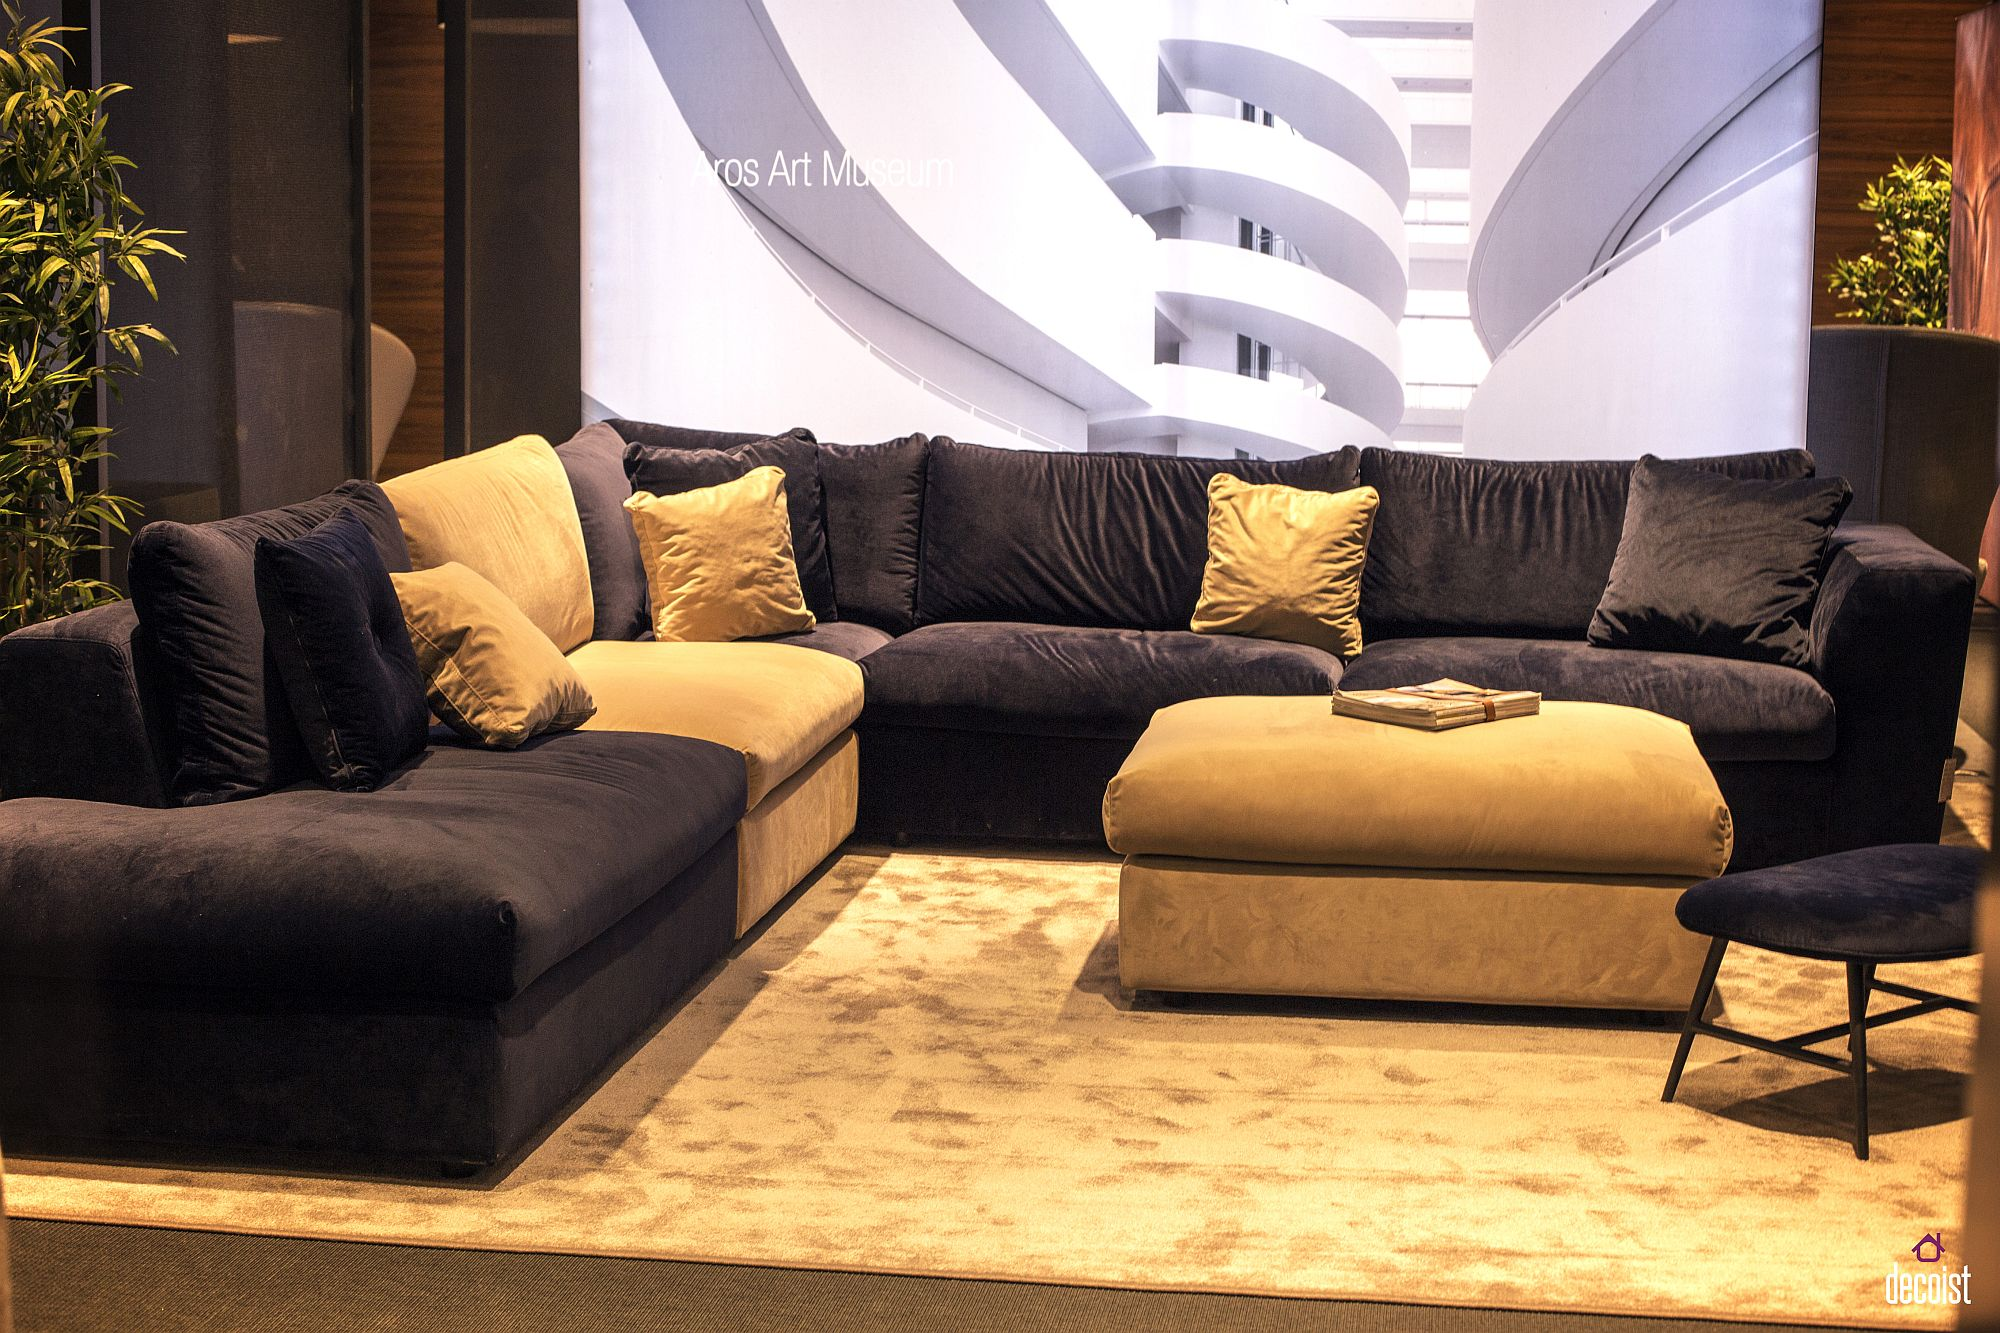 Combining-a-light-hue-with-darker-shade-to-create-a-unique-living-room